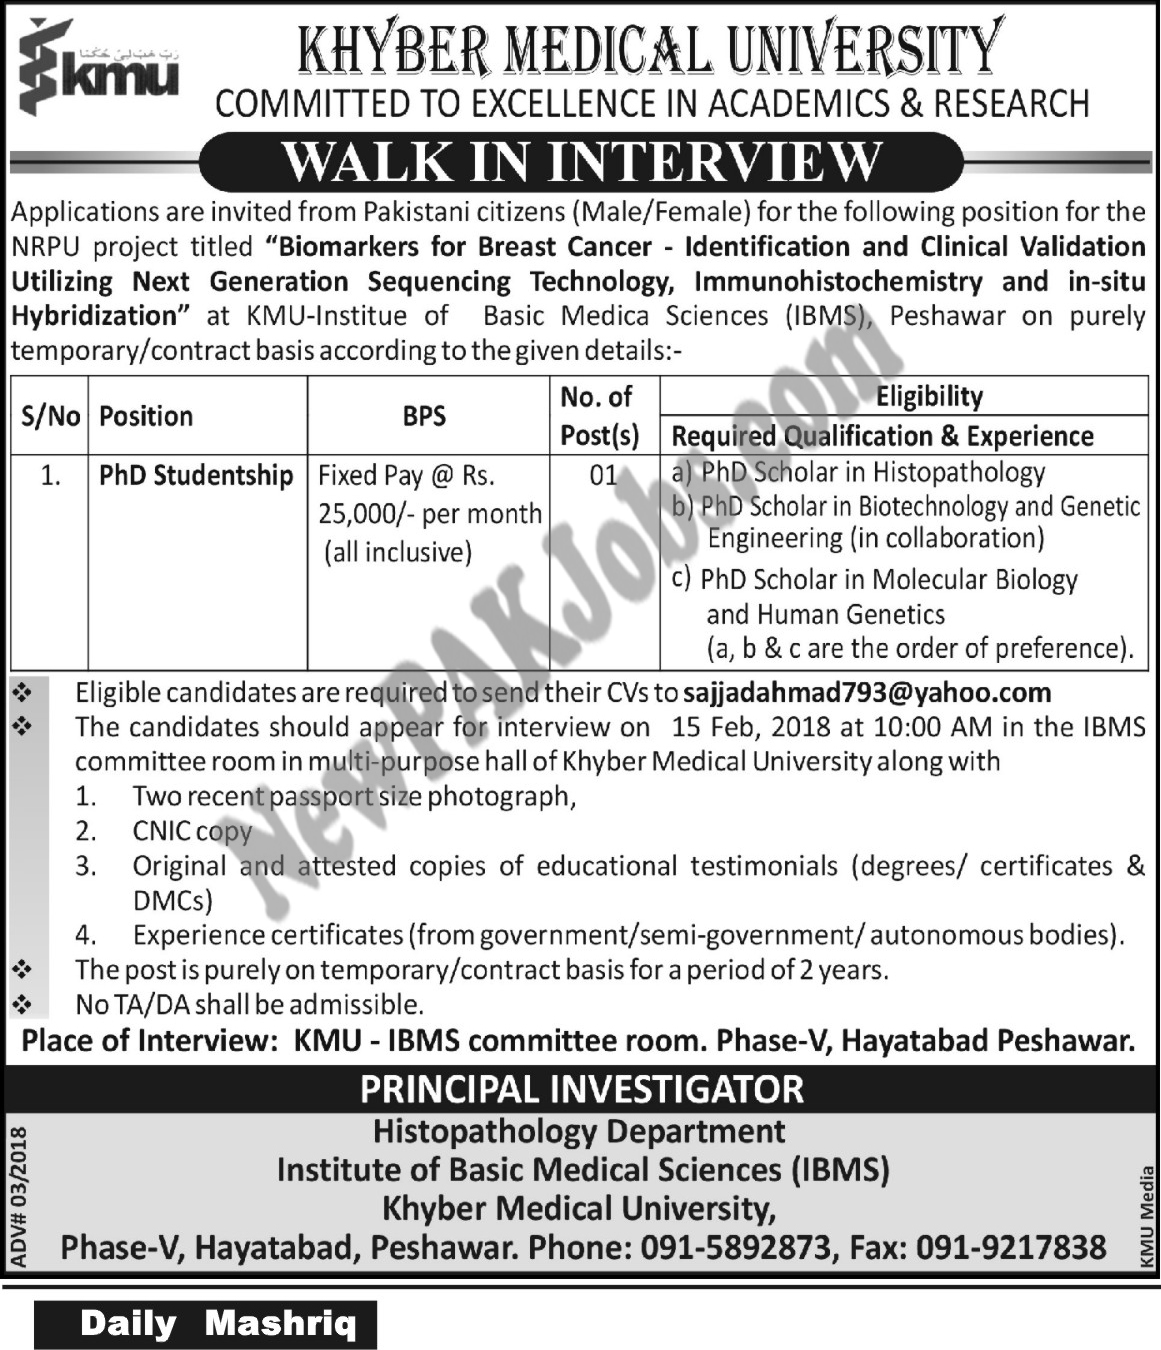 PhD Studentship Opportunities in Khyber Medical University Feb 2018